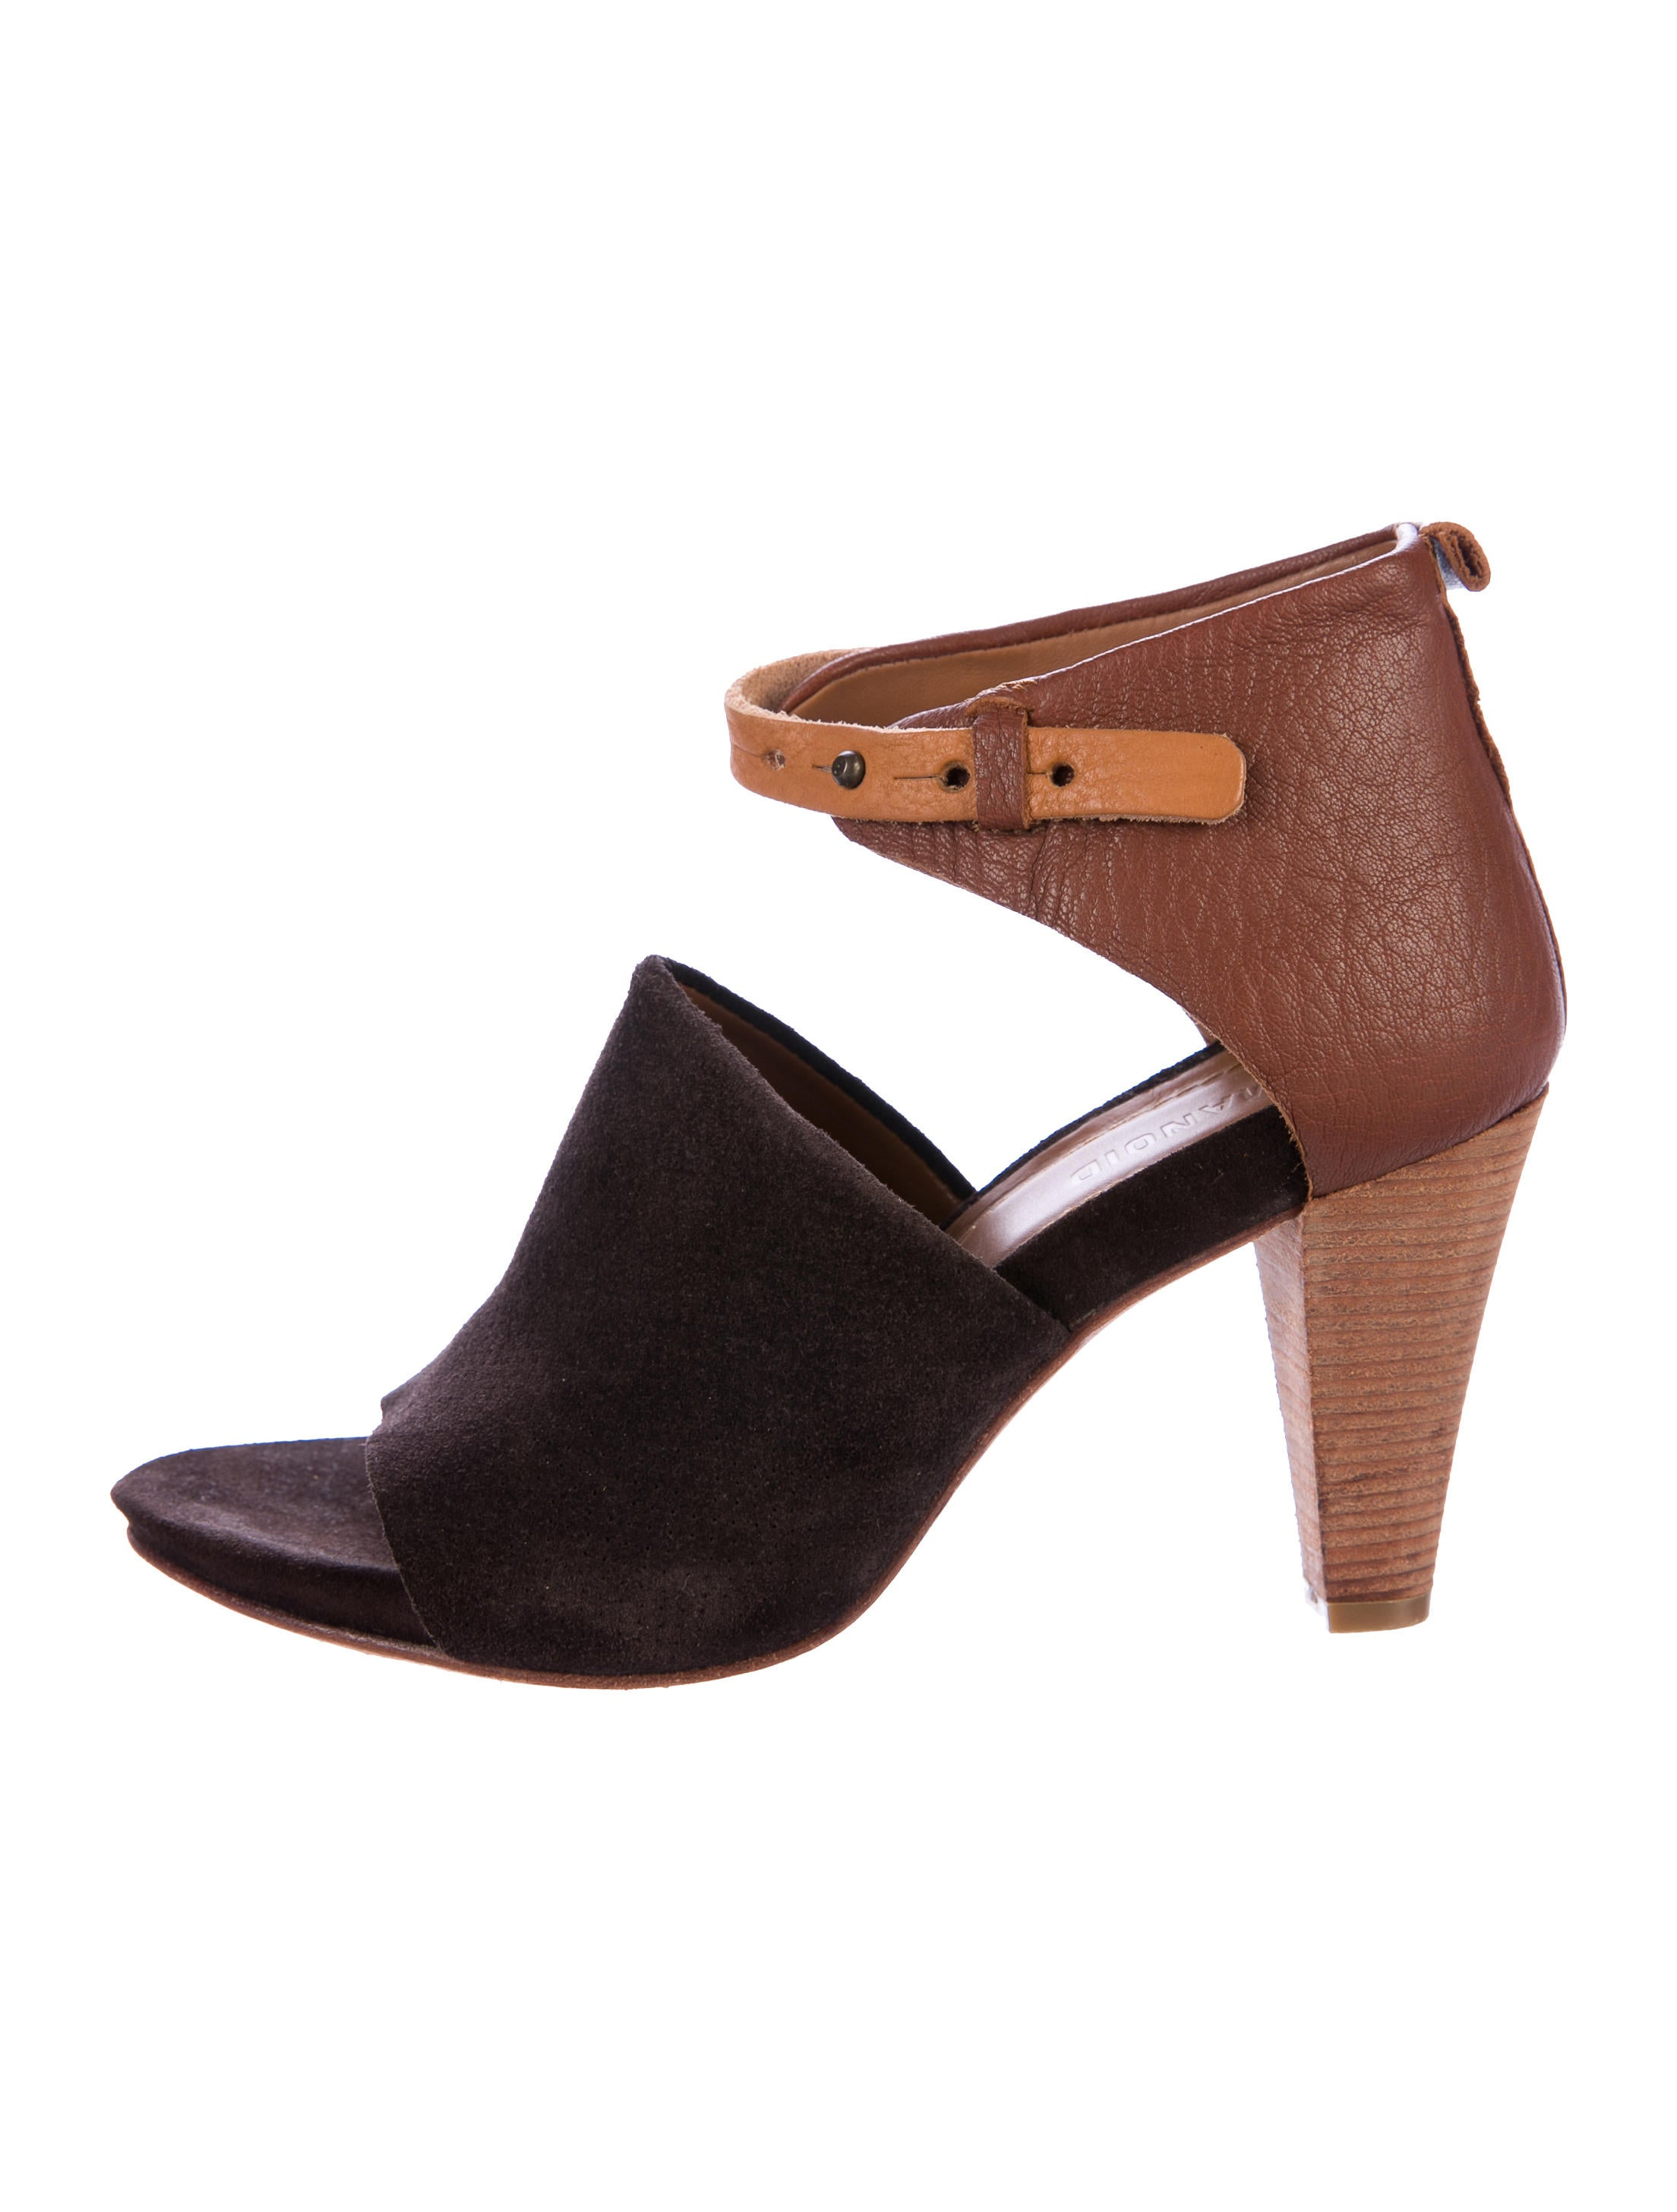 buy cheap discounts outlet really Humanoid Suede Peep-Toe Pumps 4JTYI9NX